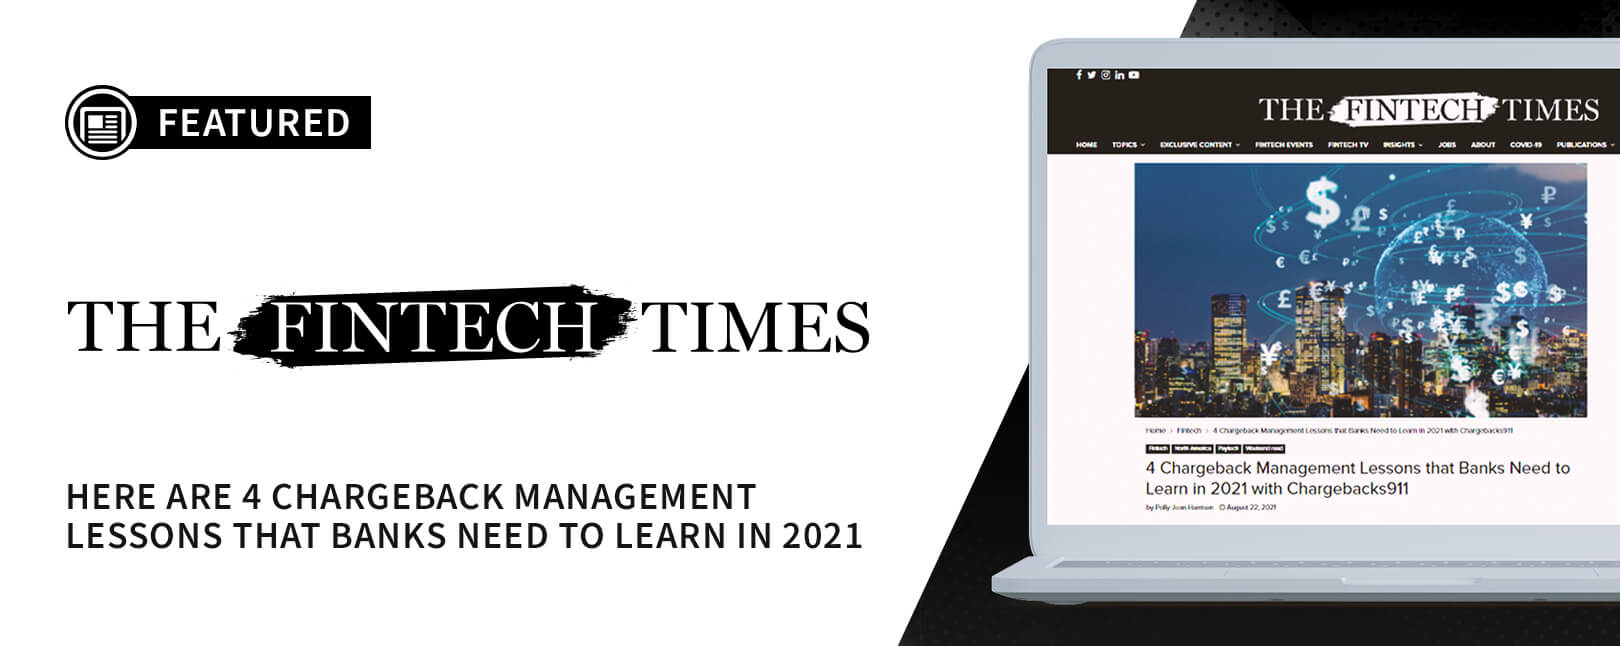 4 Chargeback Management Lessons that Banks Need to Learn in 2021